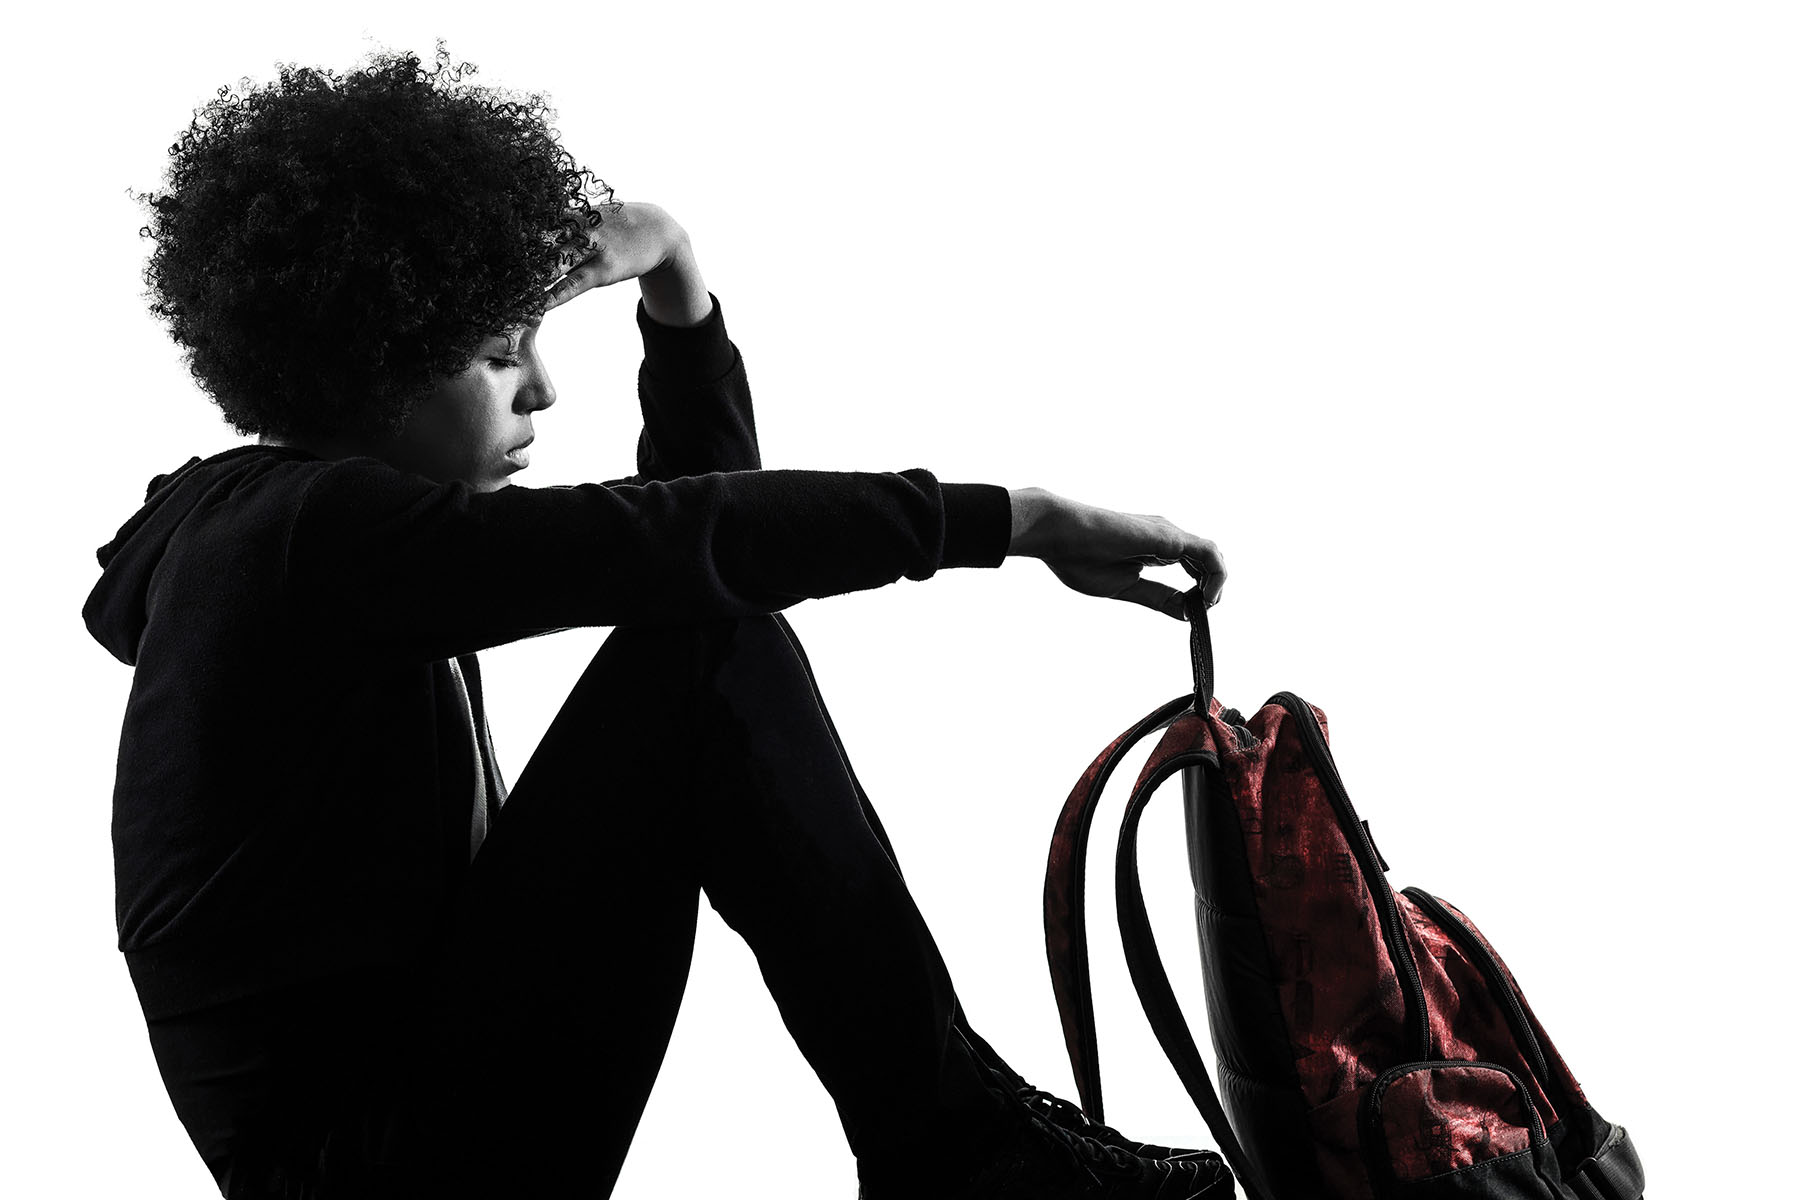 What to Know About Depression in Black College Students There's a growing number of Black college students experiencing depression, but campuses can help those in crisis.